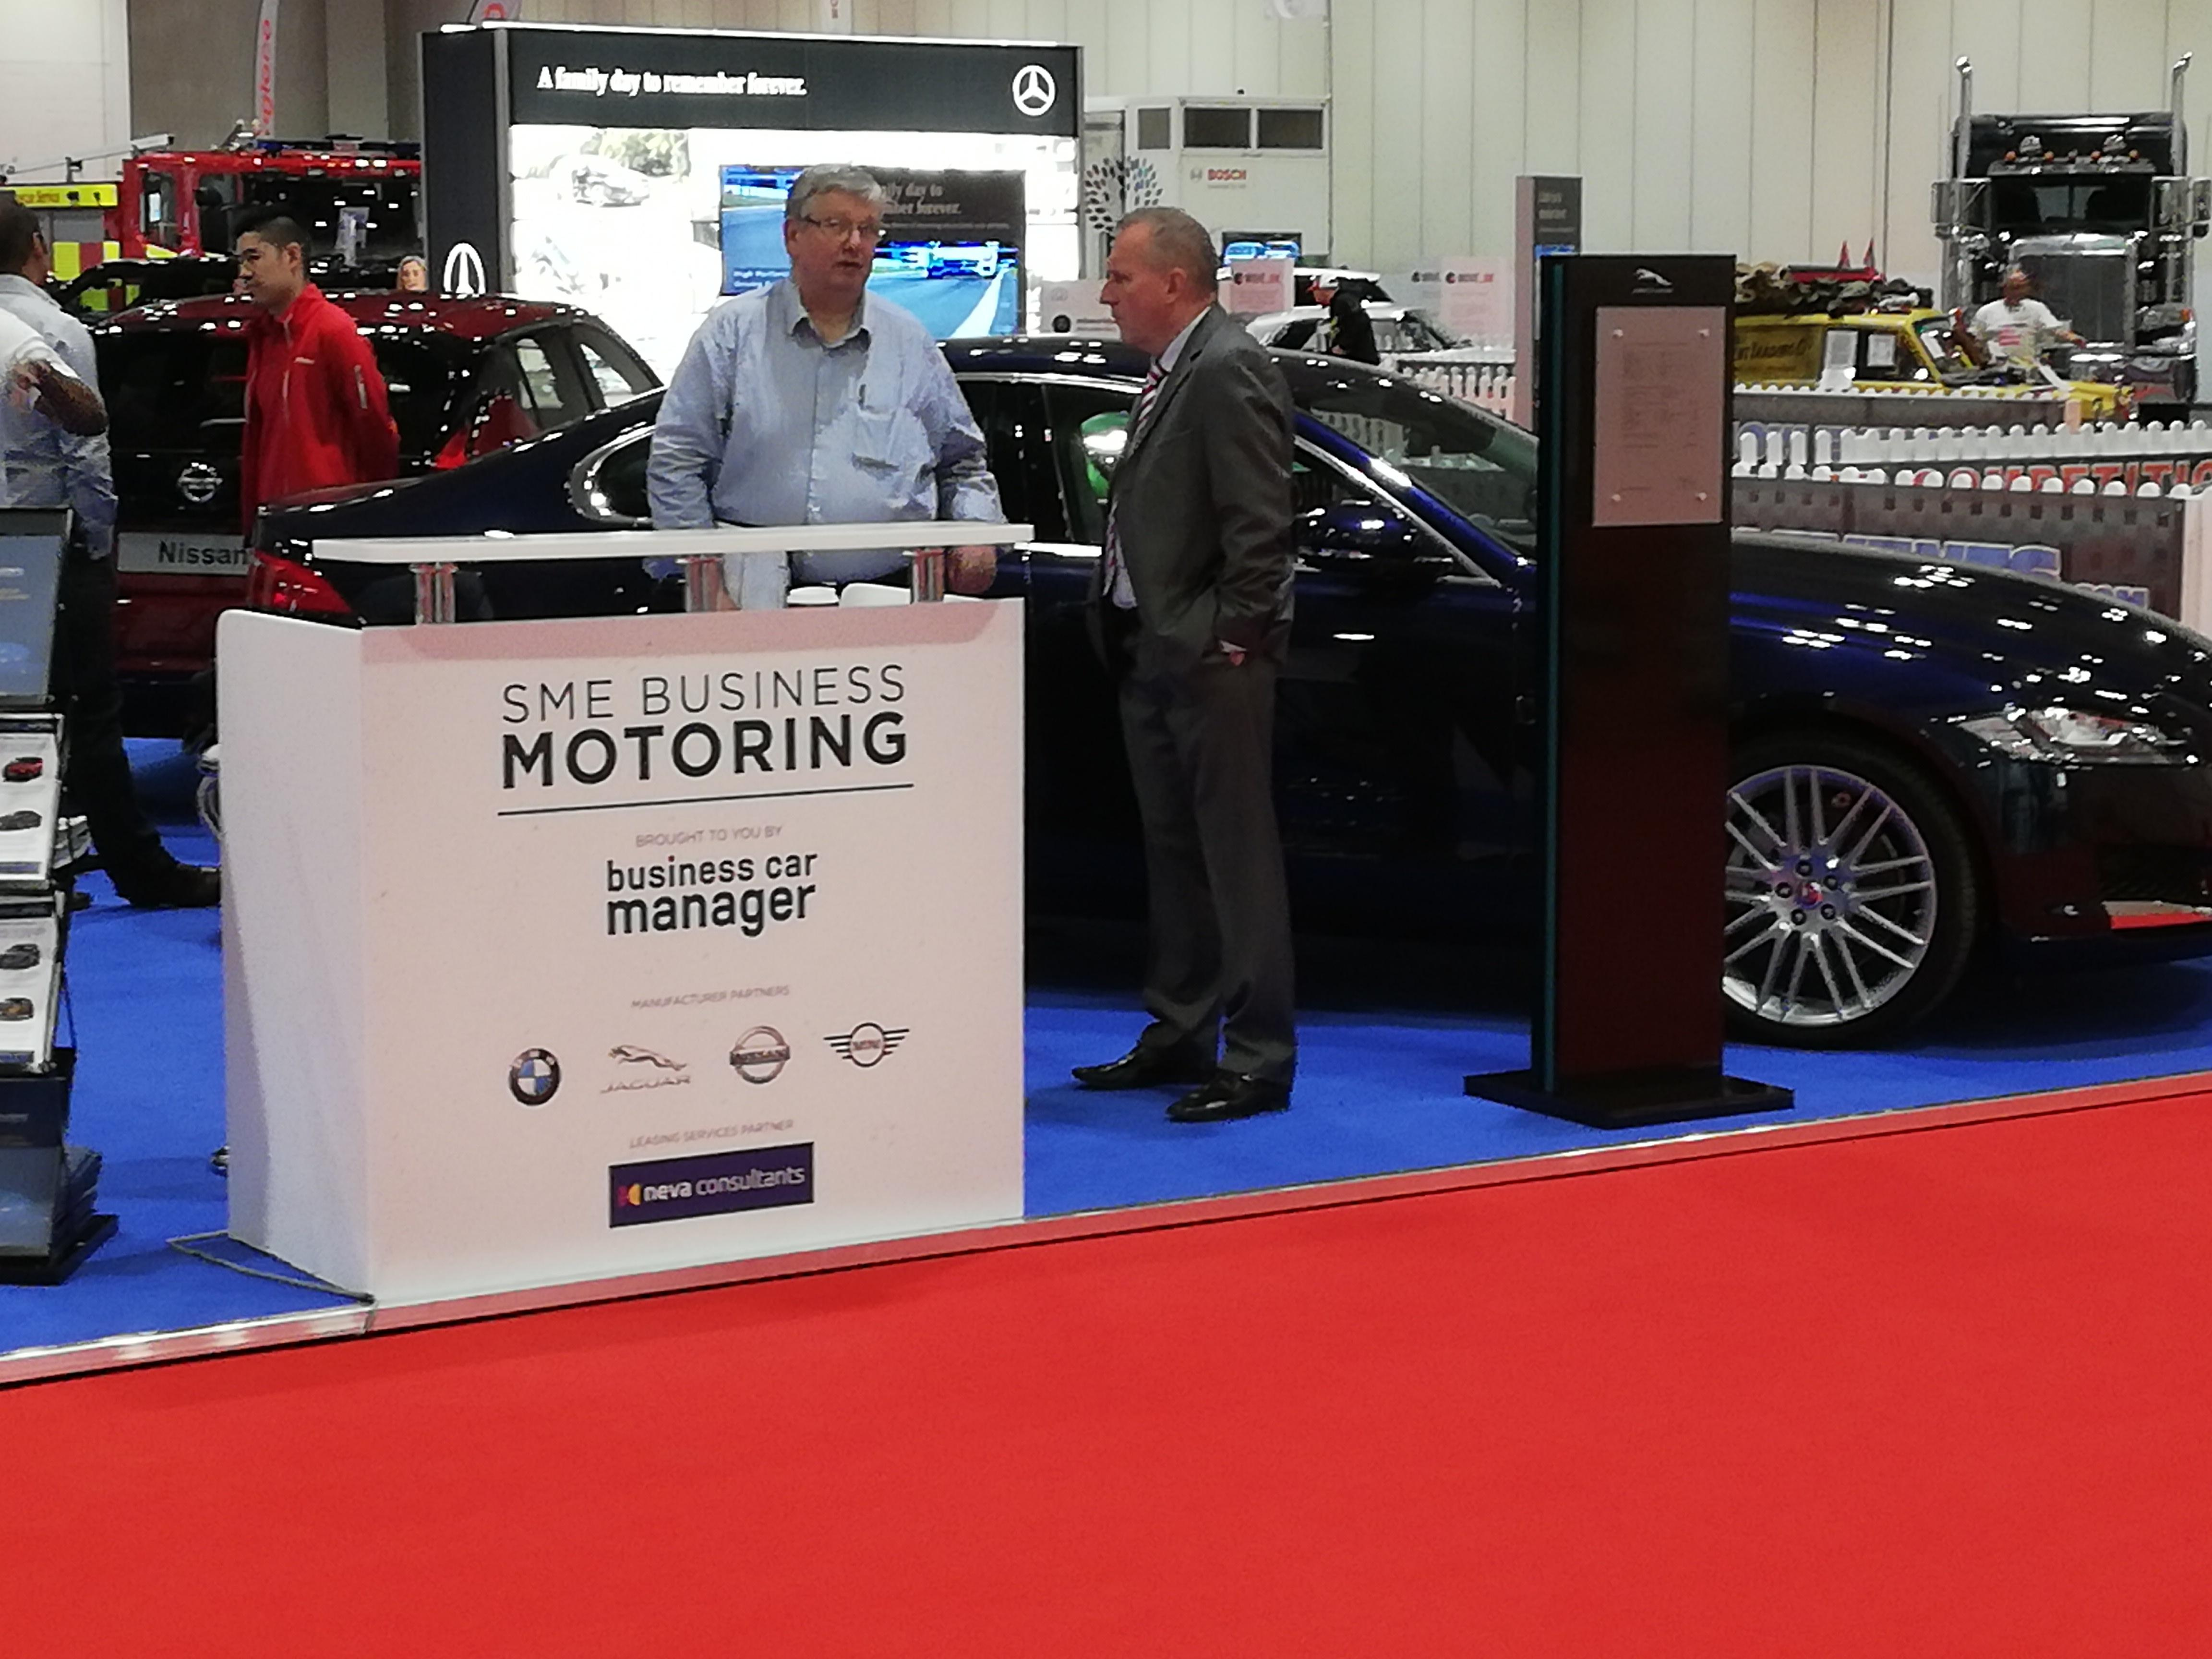 Business Car Manager SME Business Motoring Stand at the London Motor Show